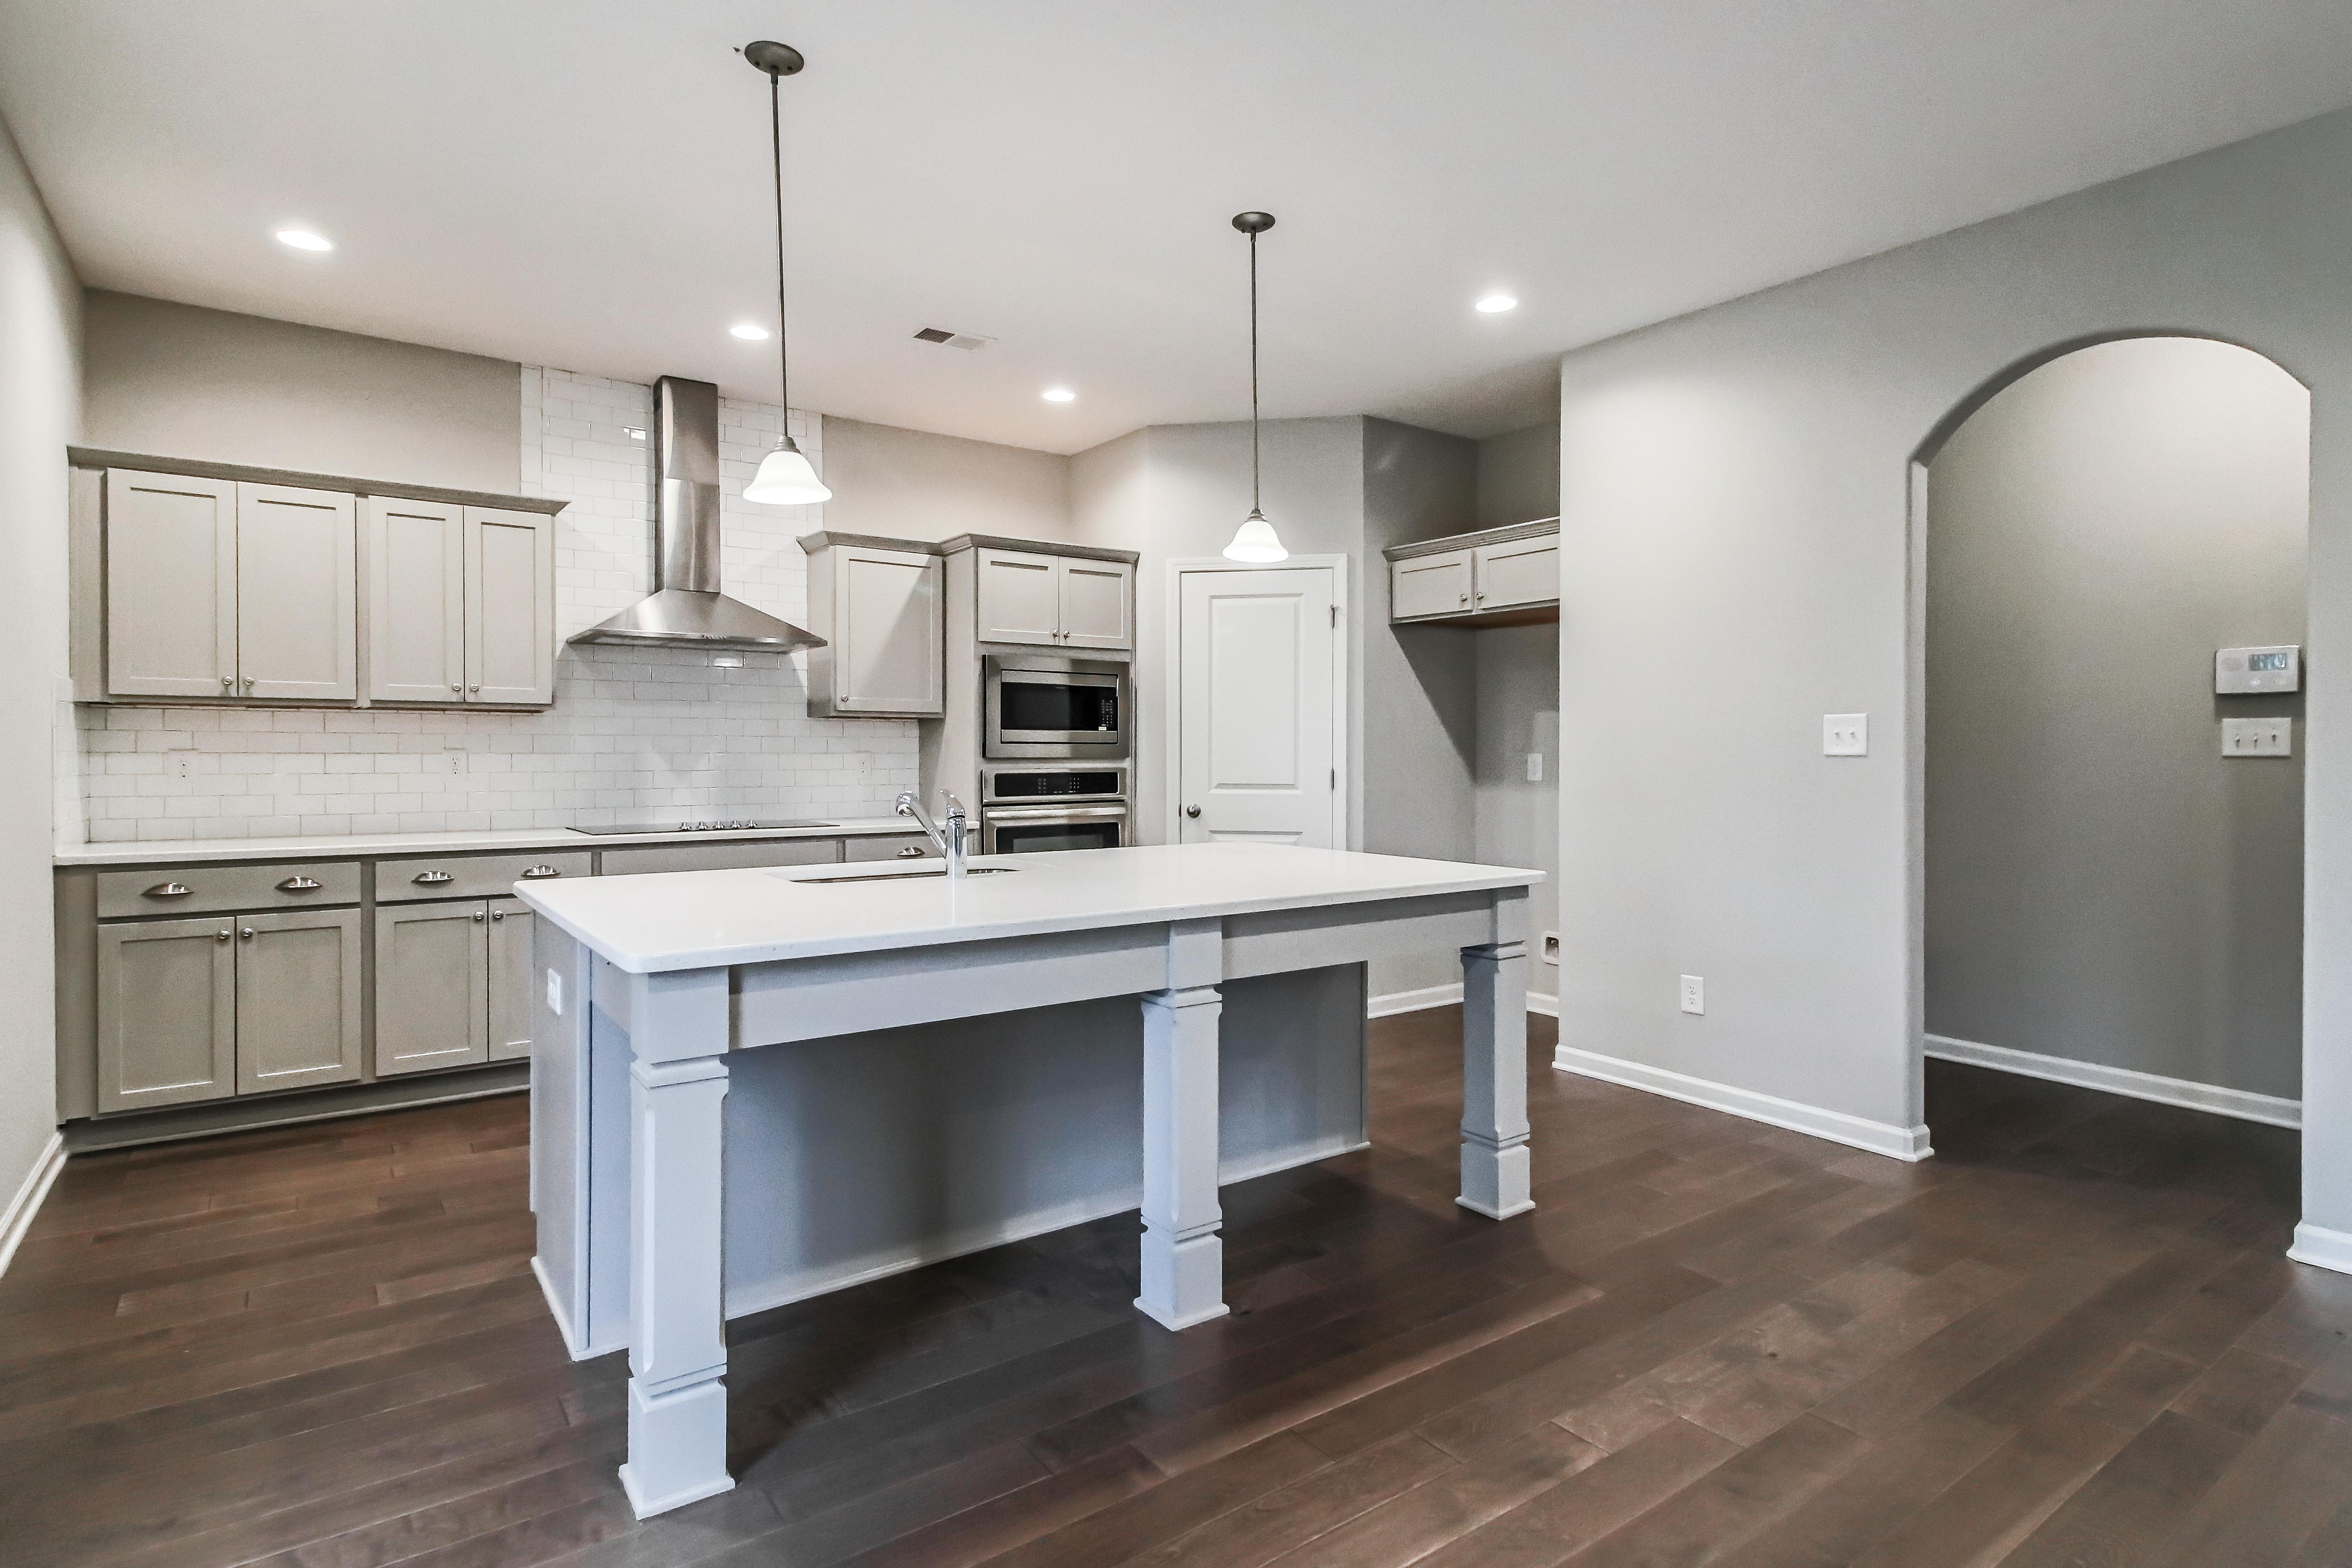 Kitchen featured in the Cypress By Hughston Homes in Macon, GA